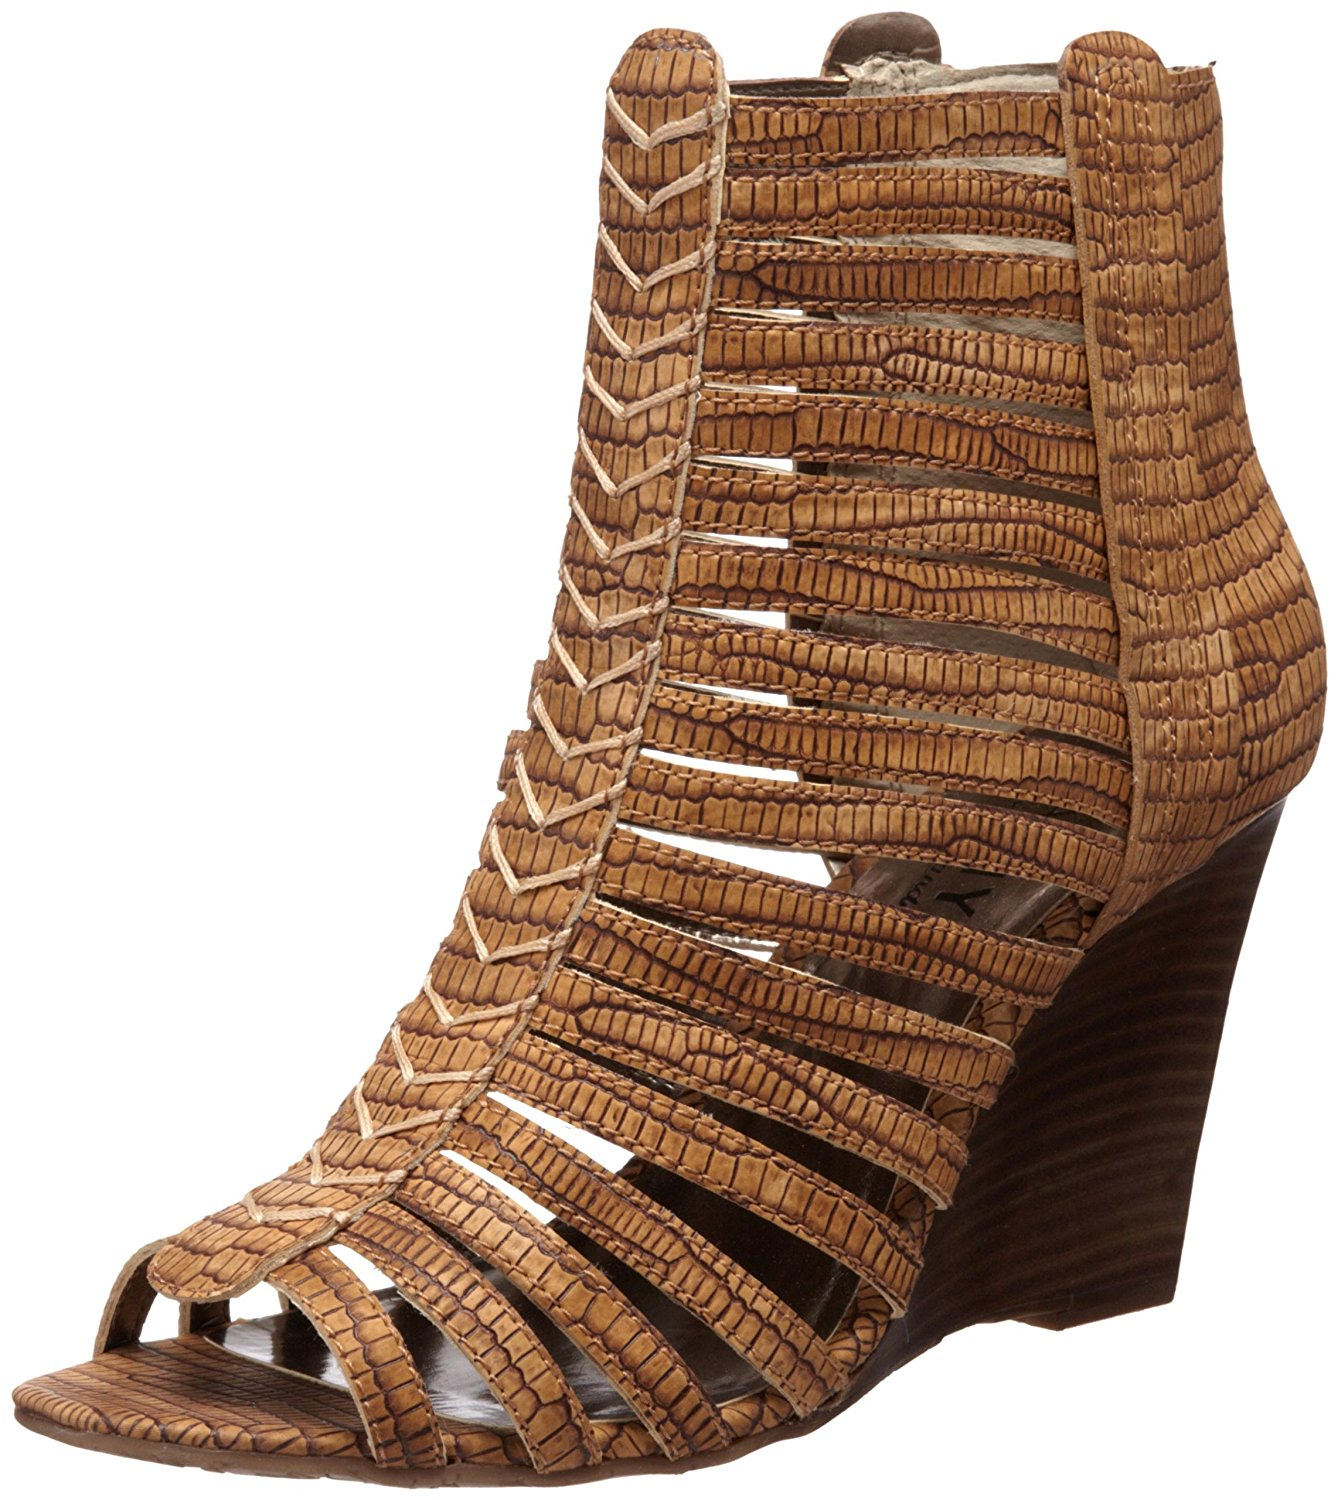 263e548f7f00 Get Quotations · Kathy Van Zeeland Women s Billie Wedge Sandal